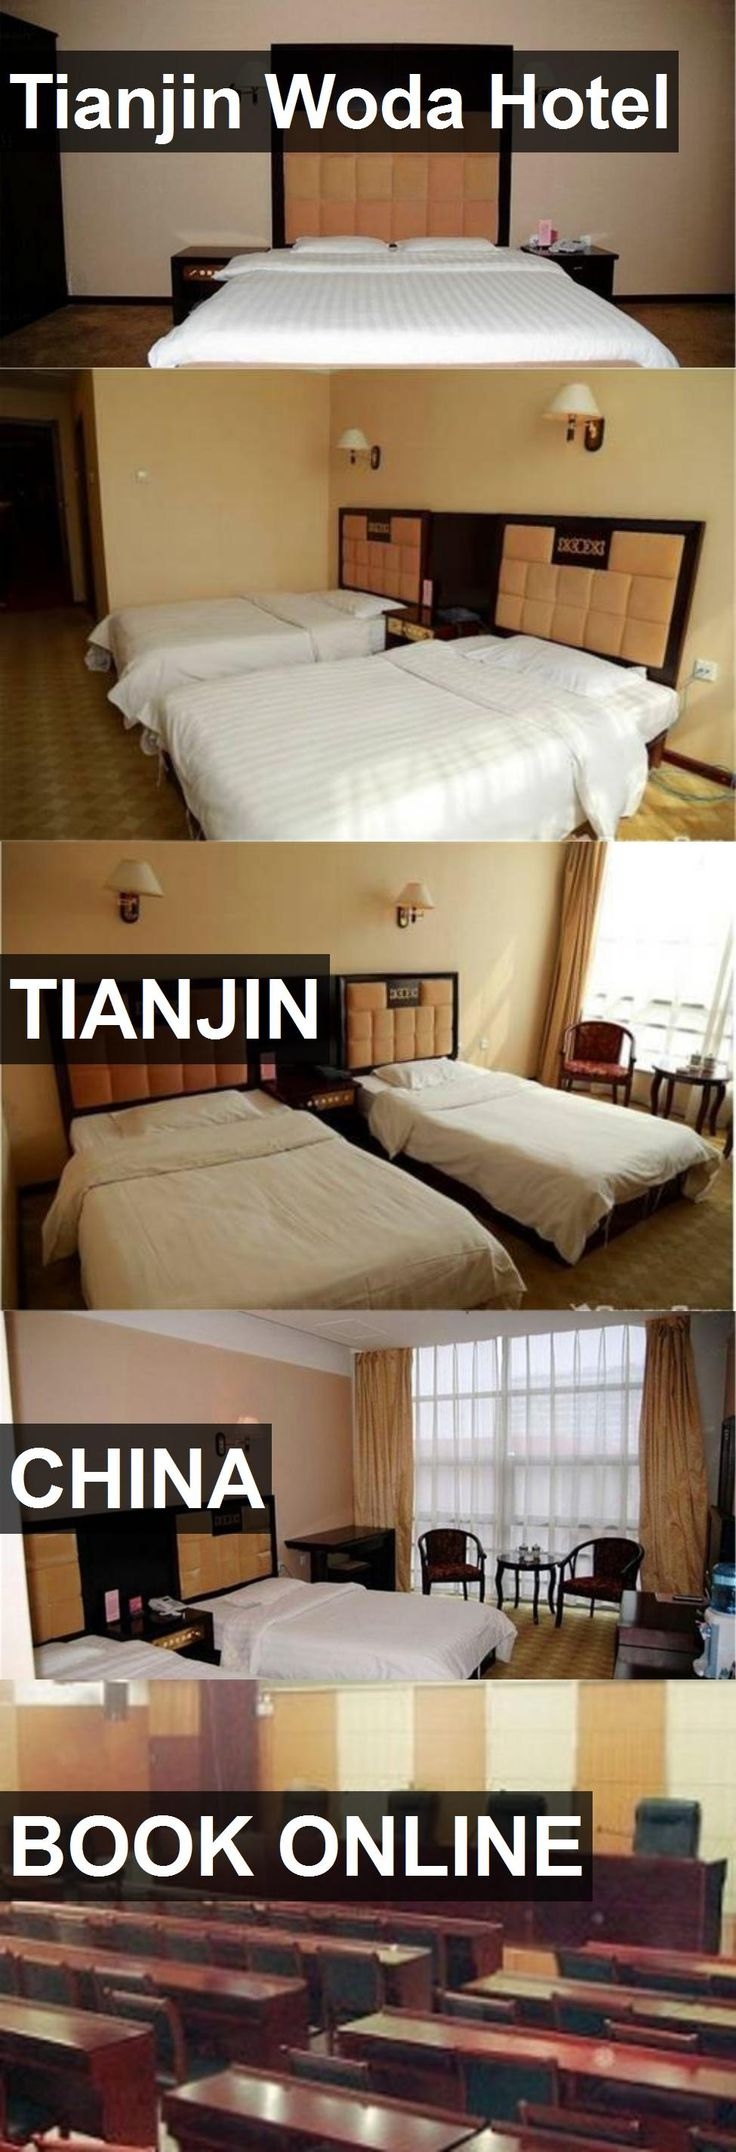 Hotel Tianjin Woda Hotel in Tianjin, China. For more information, photos, reviews and best prices please follow the link. #China #Tianjin #hotel #travel #vacation